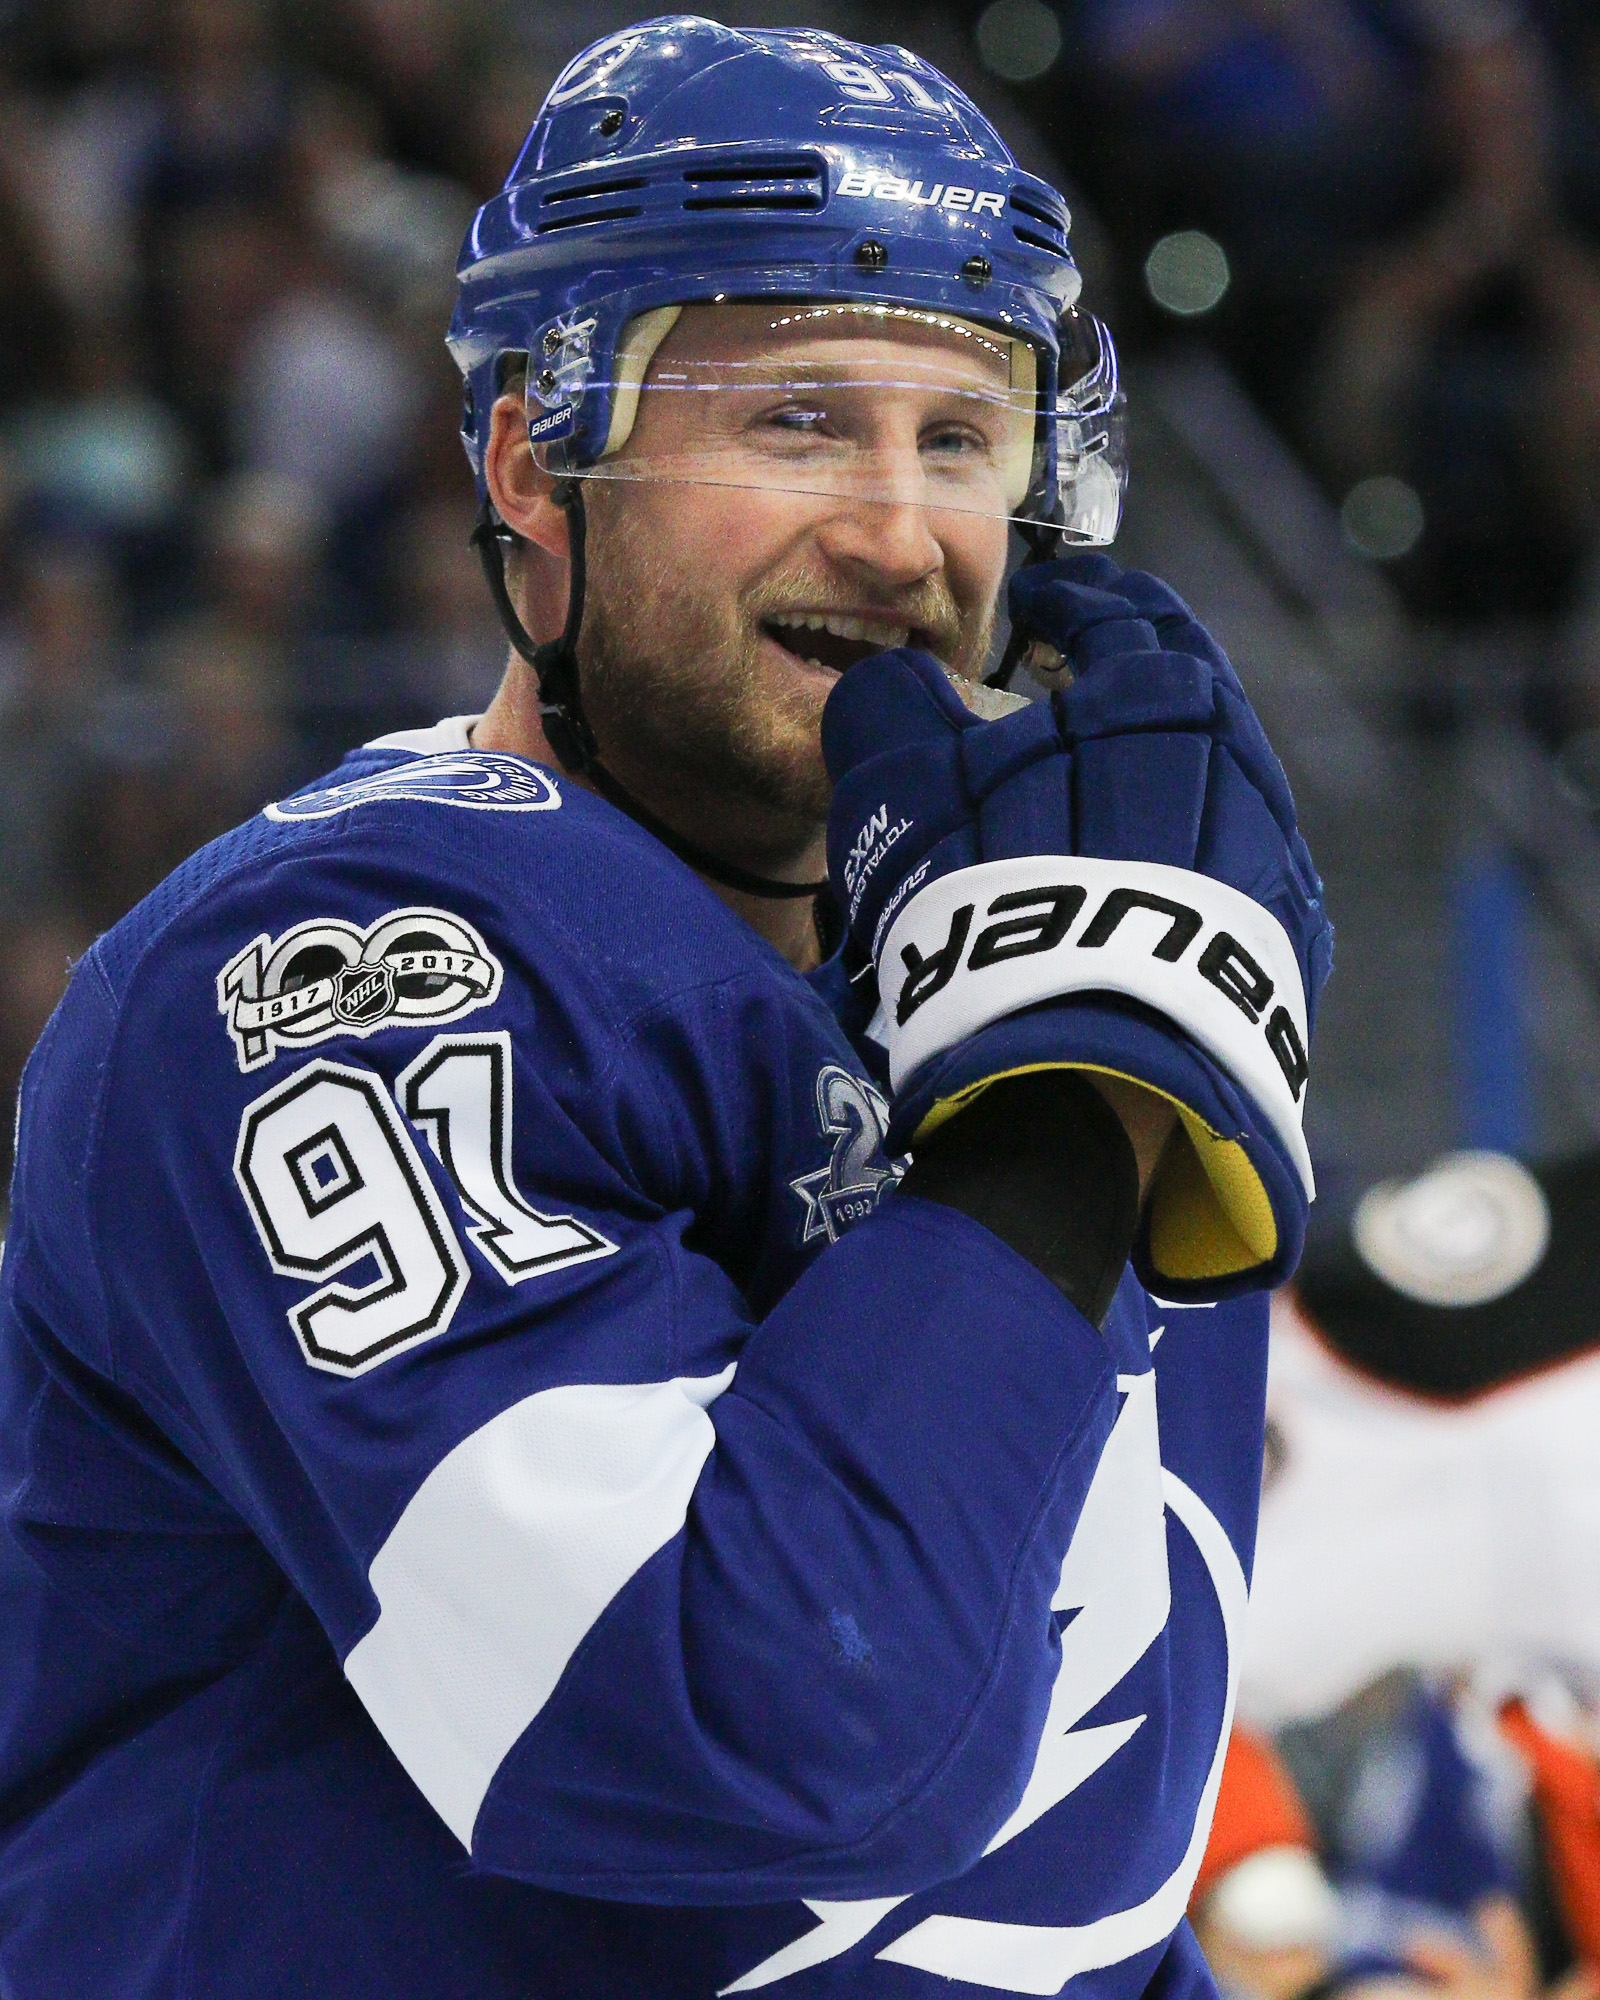 Stamkos scored a goal early for Bolts./ANDREW J. KRAMER